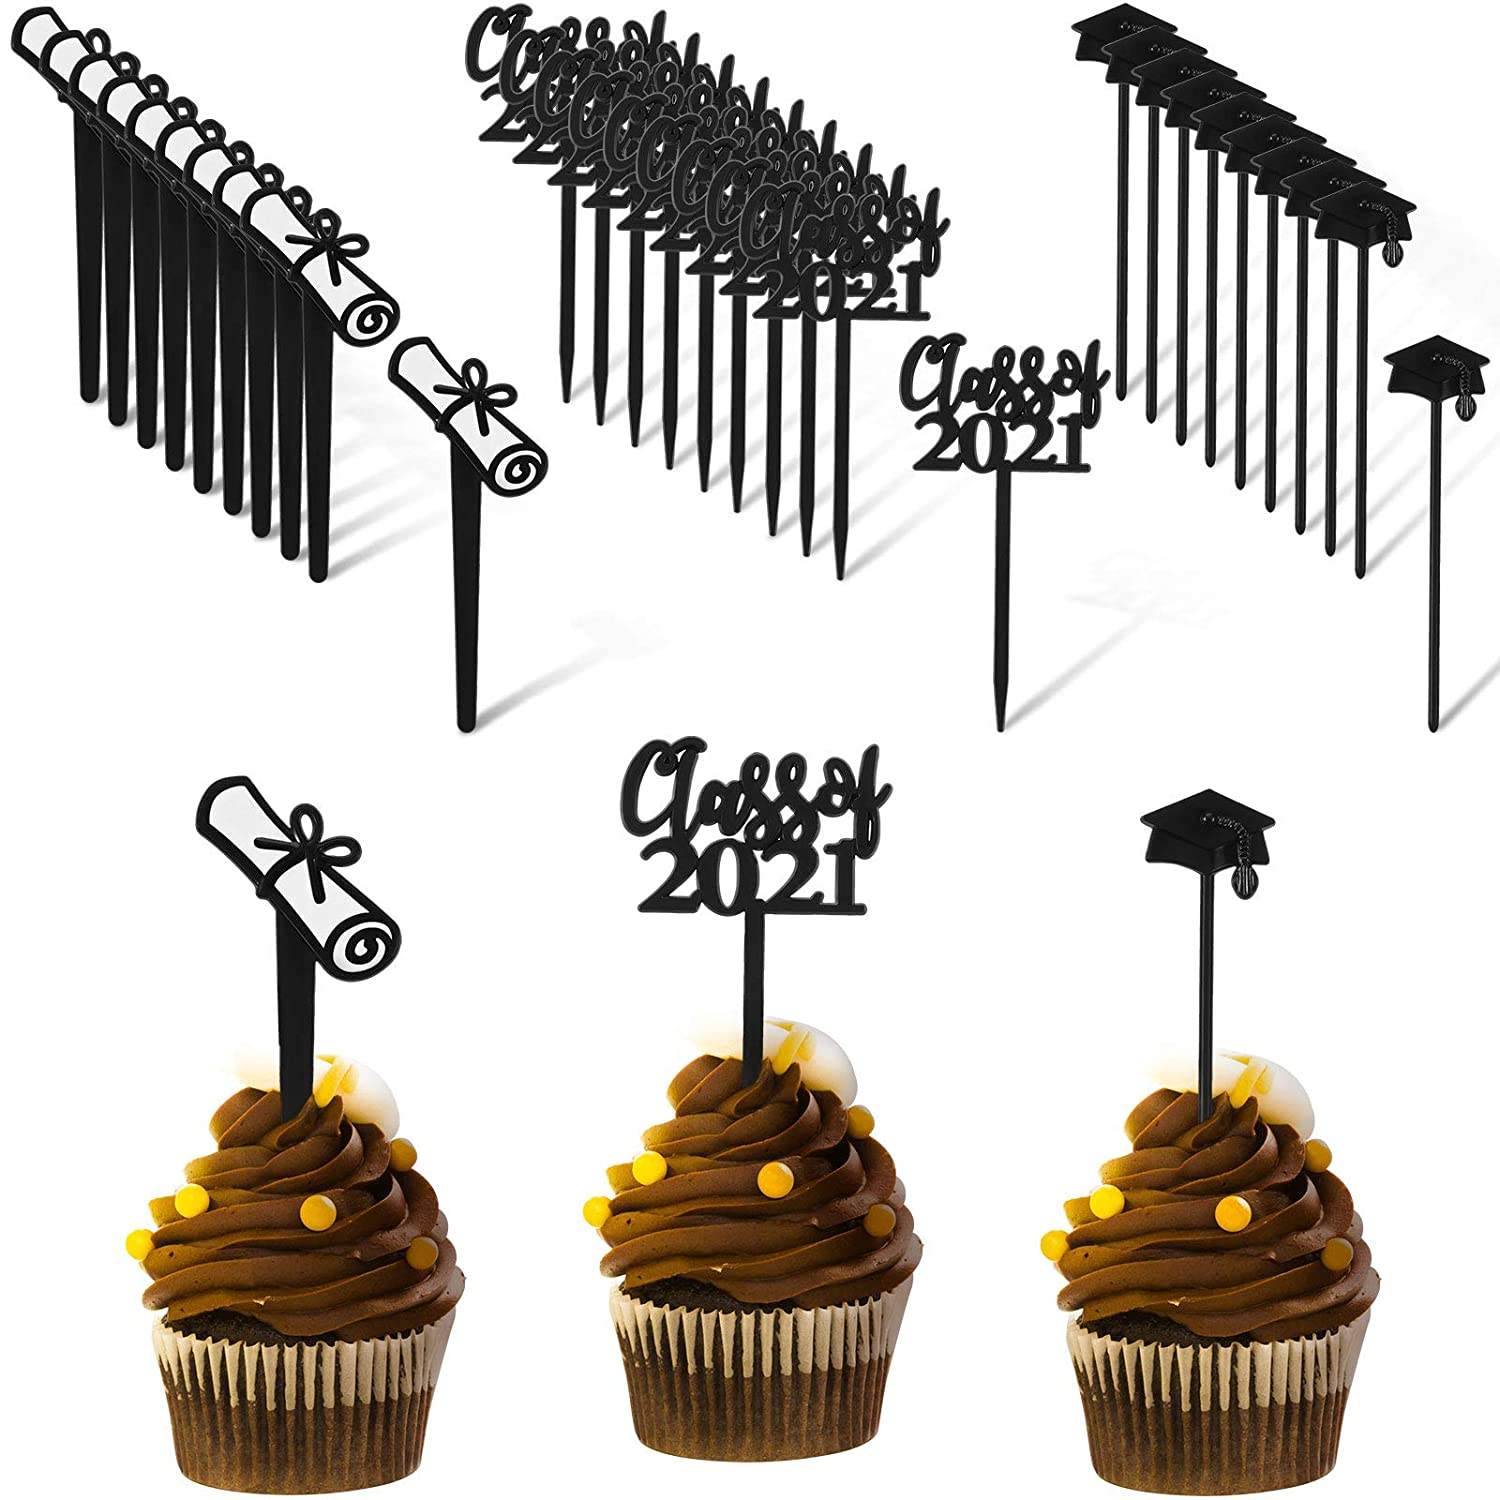 90 Pieces Class of 2021 Theme Graduation Cake Topper Cupcake Picks Plastic Picks Graduation Cupcake Decorations for Party Supplies and Graduation Party Favors, 3 Styles